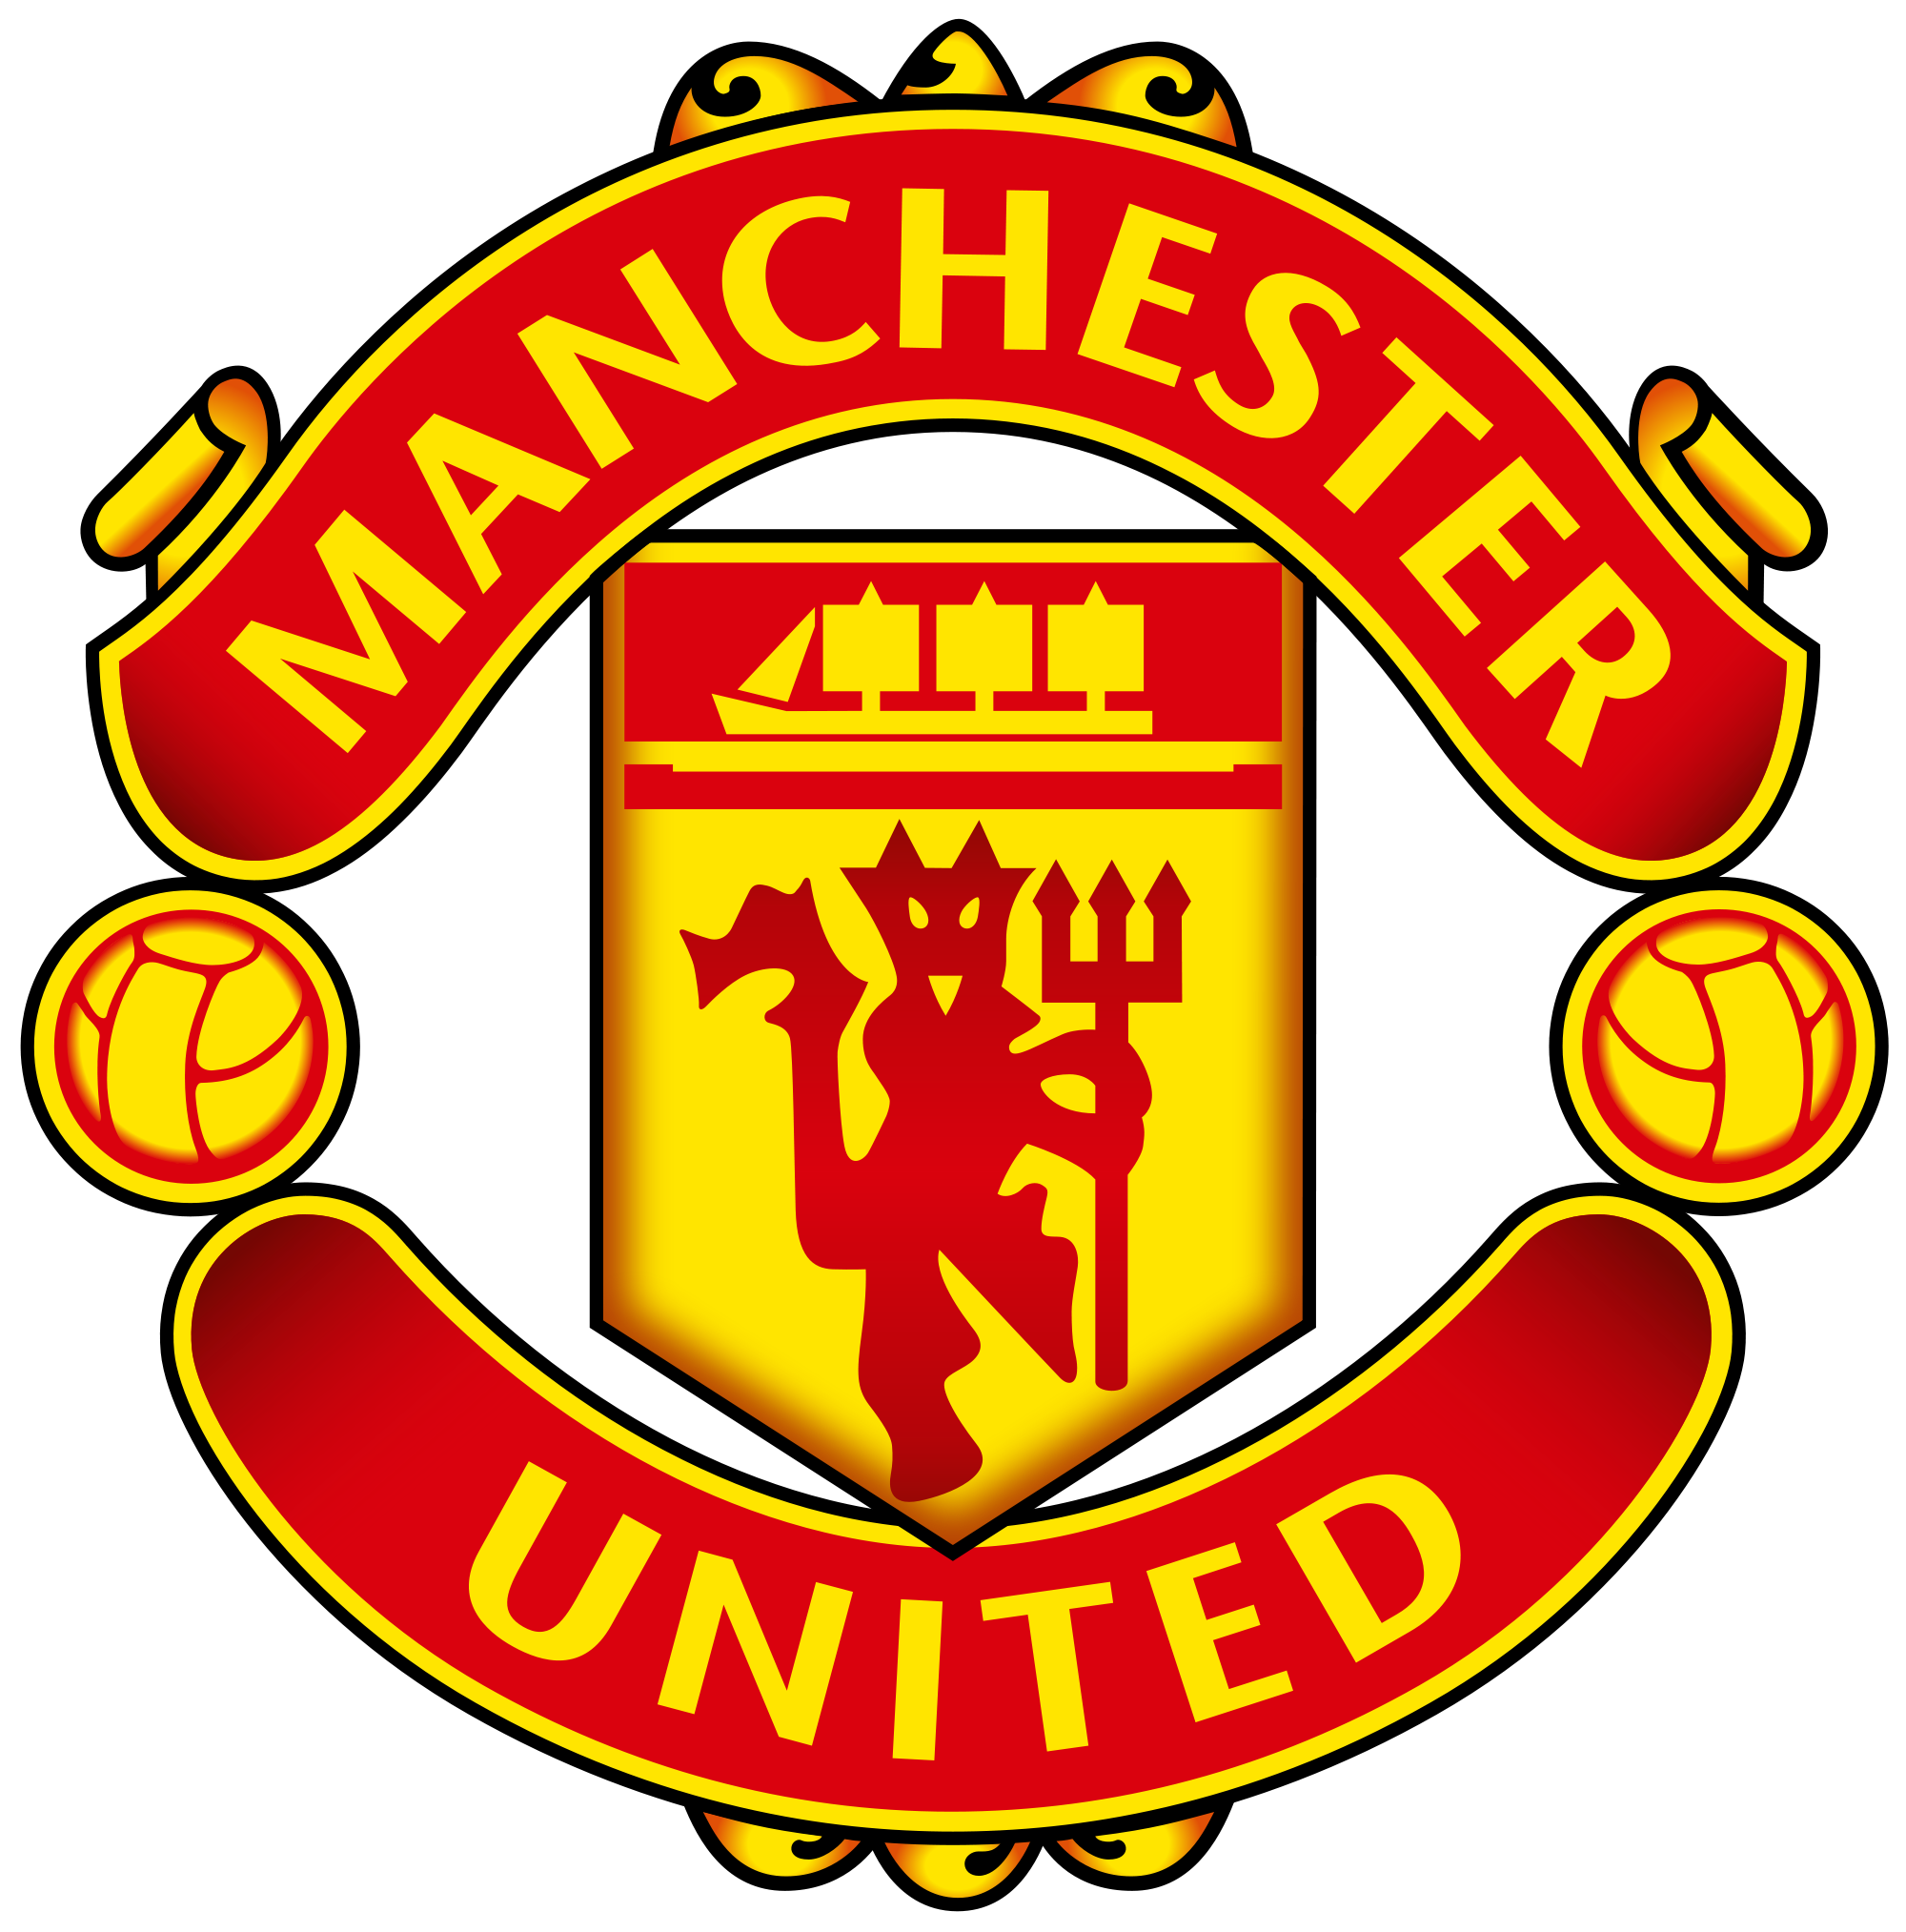 Manchester United Football Club In 2020 Manchester United Football Manchester United Logo Manchester United Football Club